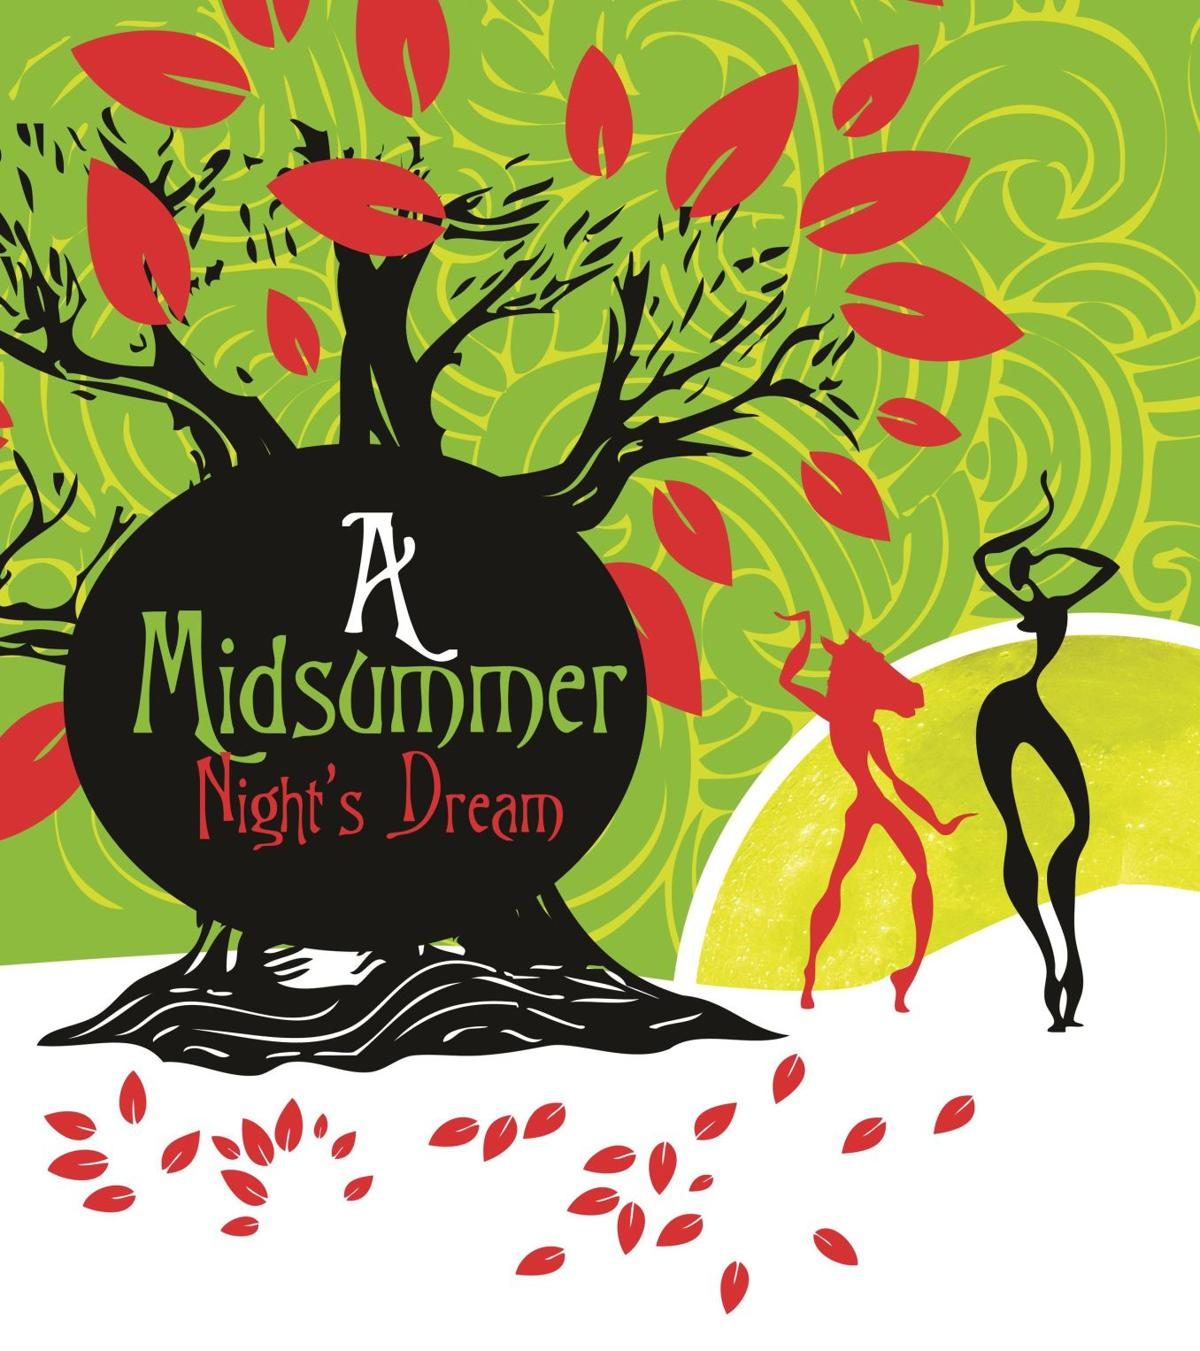 Local version of 'Midsummer Night's Dream' draws attention to LGBT rights